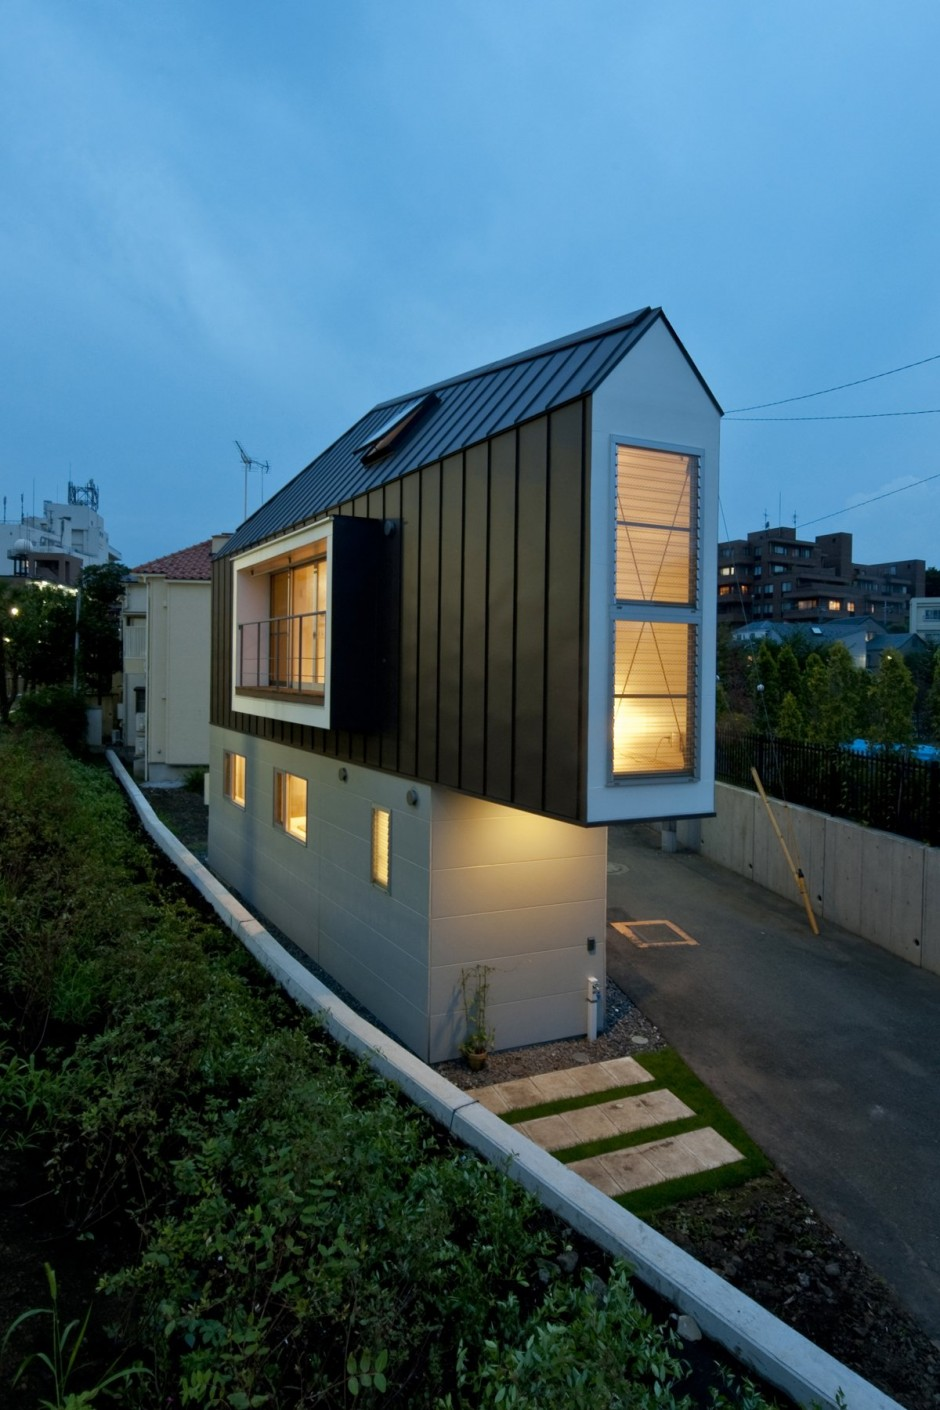 11 Spectacular Narrow Houses And Their Ingenious Design Solutions on company branding design, civil 3d design, theming design, pie graph design, web design, mets design, interactive website design, blockquote design, simple text design, ms word design, upload design, interactive experience design, datatable design, openoffice design, potoshop design, spot color design, dvb design, datagrid design, cvs design, page banner design,